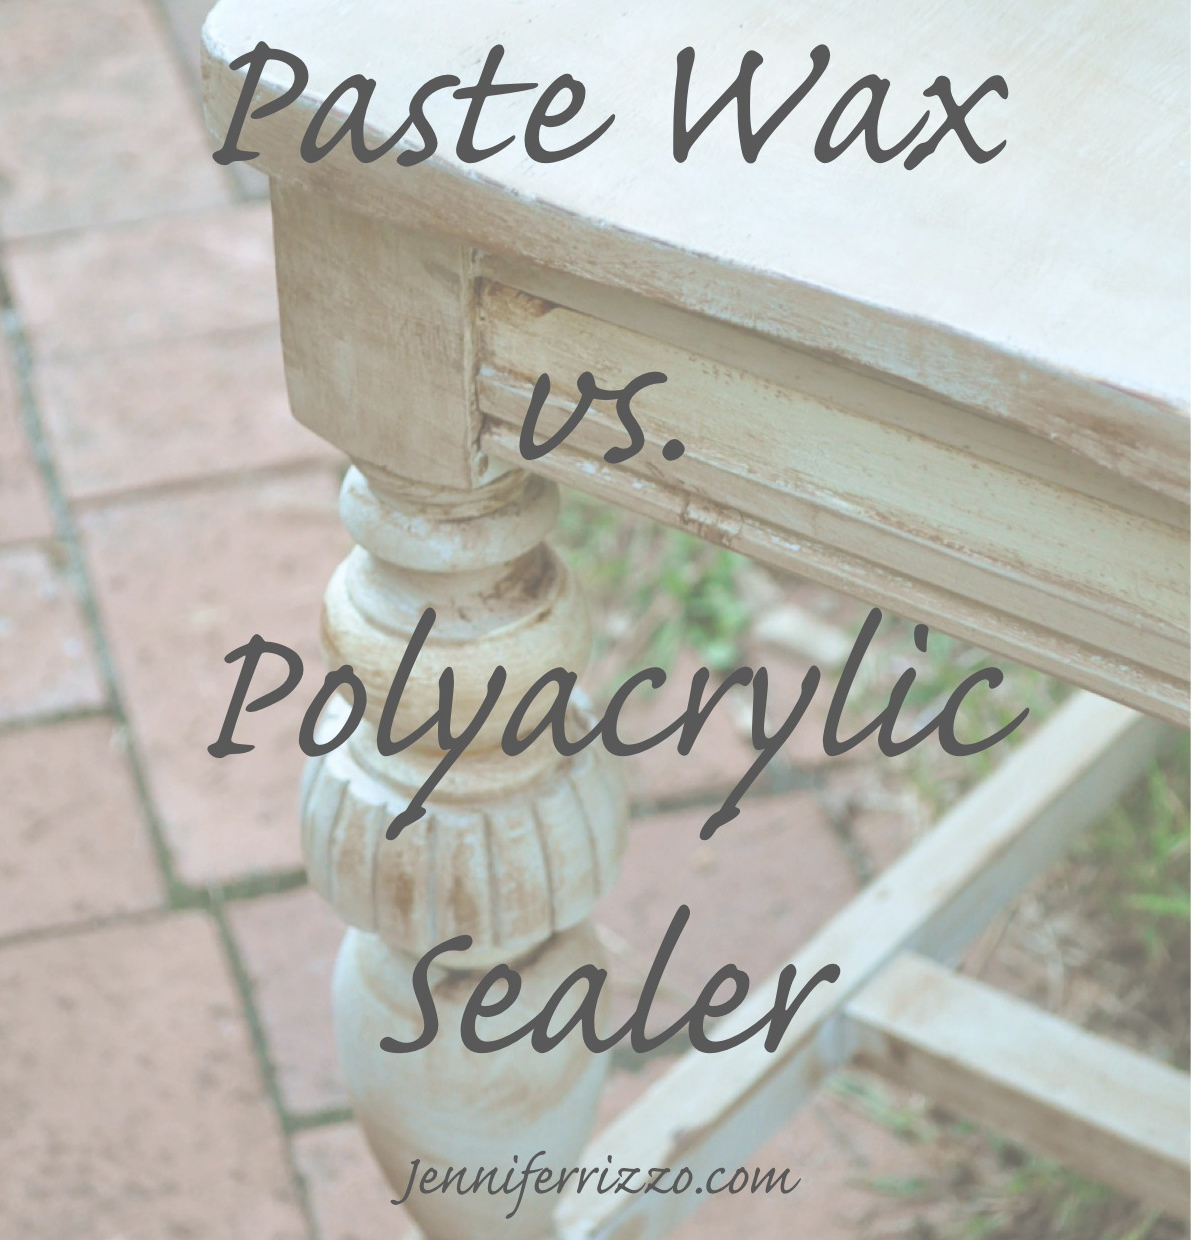 What Is The Best Way To Finsh Your Piece Of Furniture Polyacrylic Vs Paste